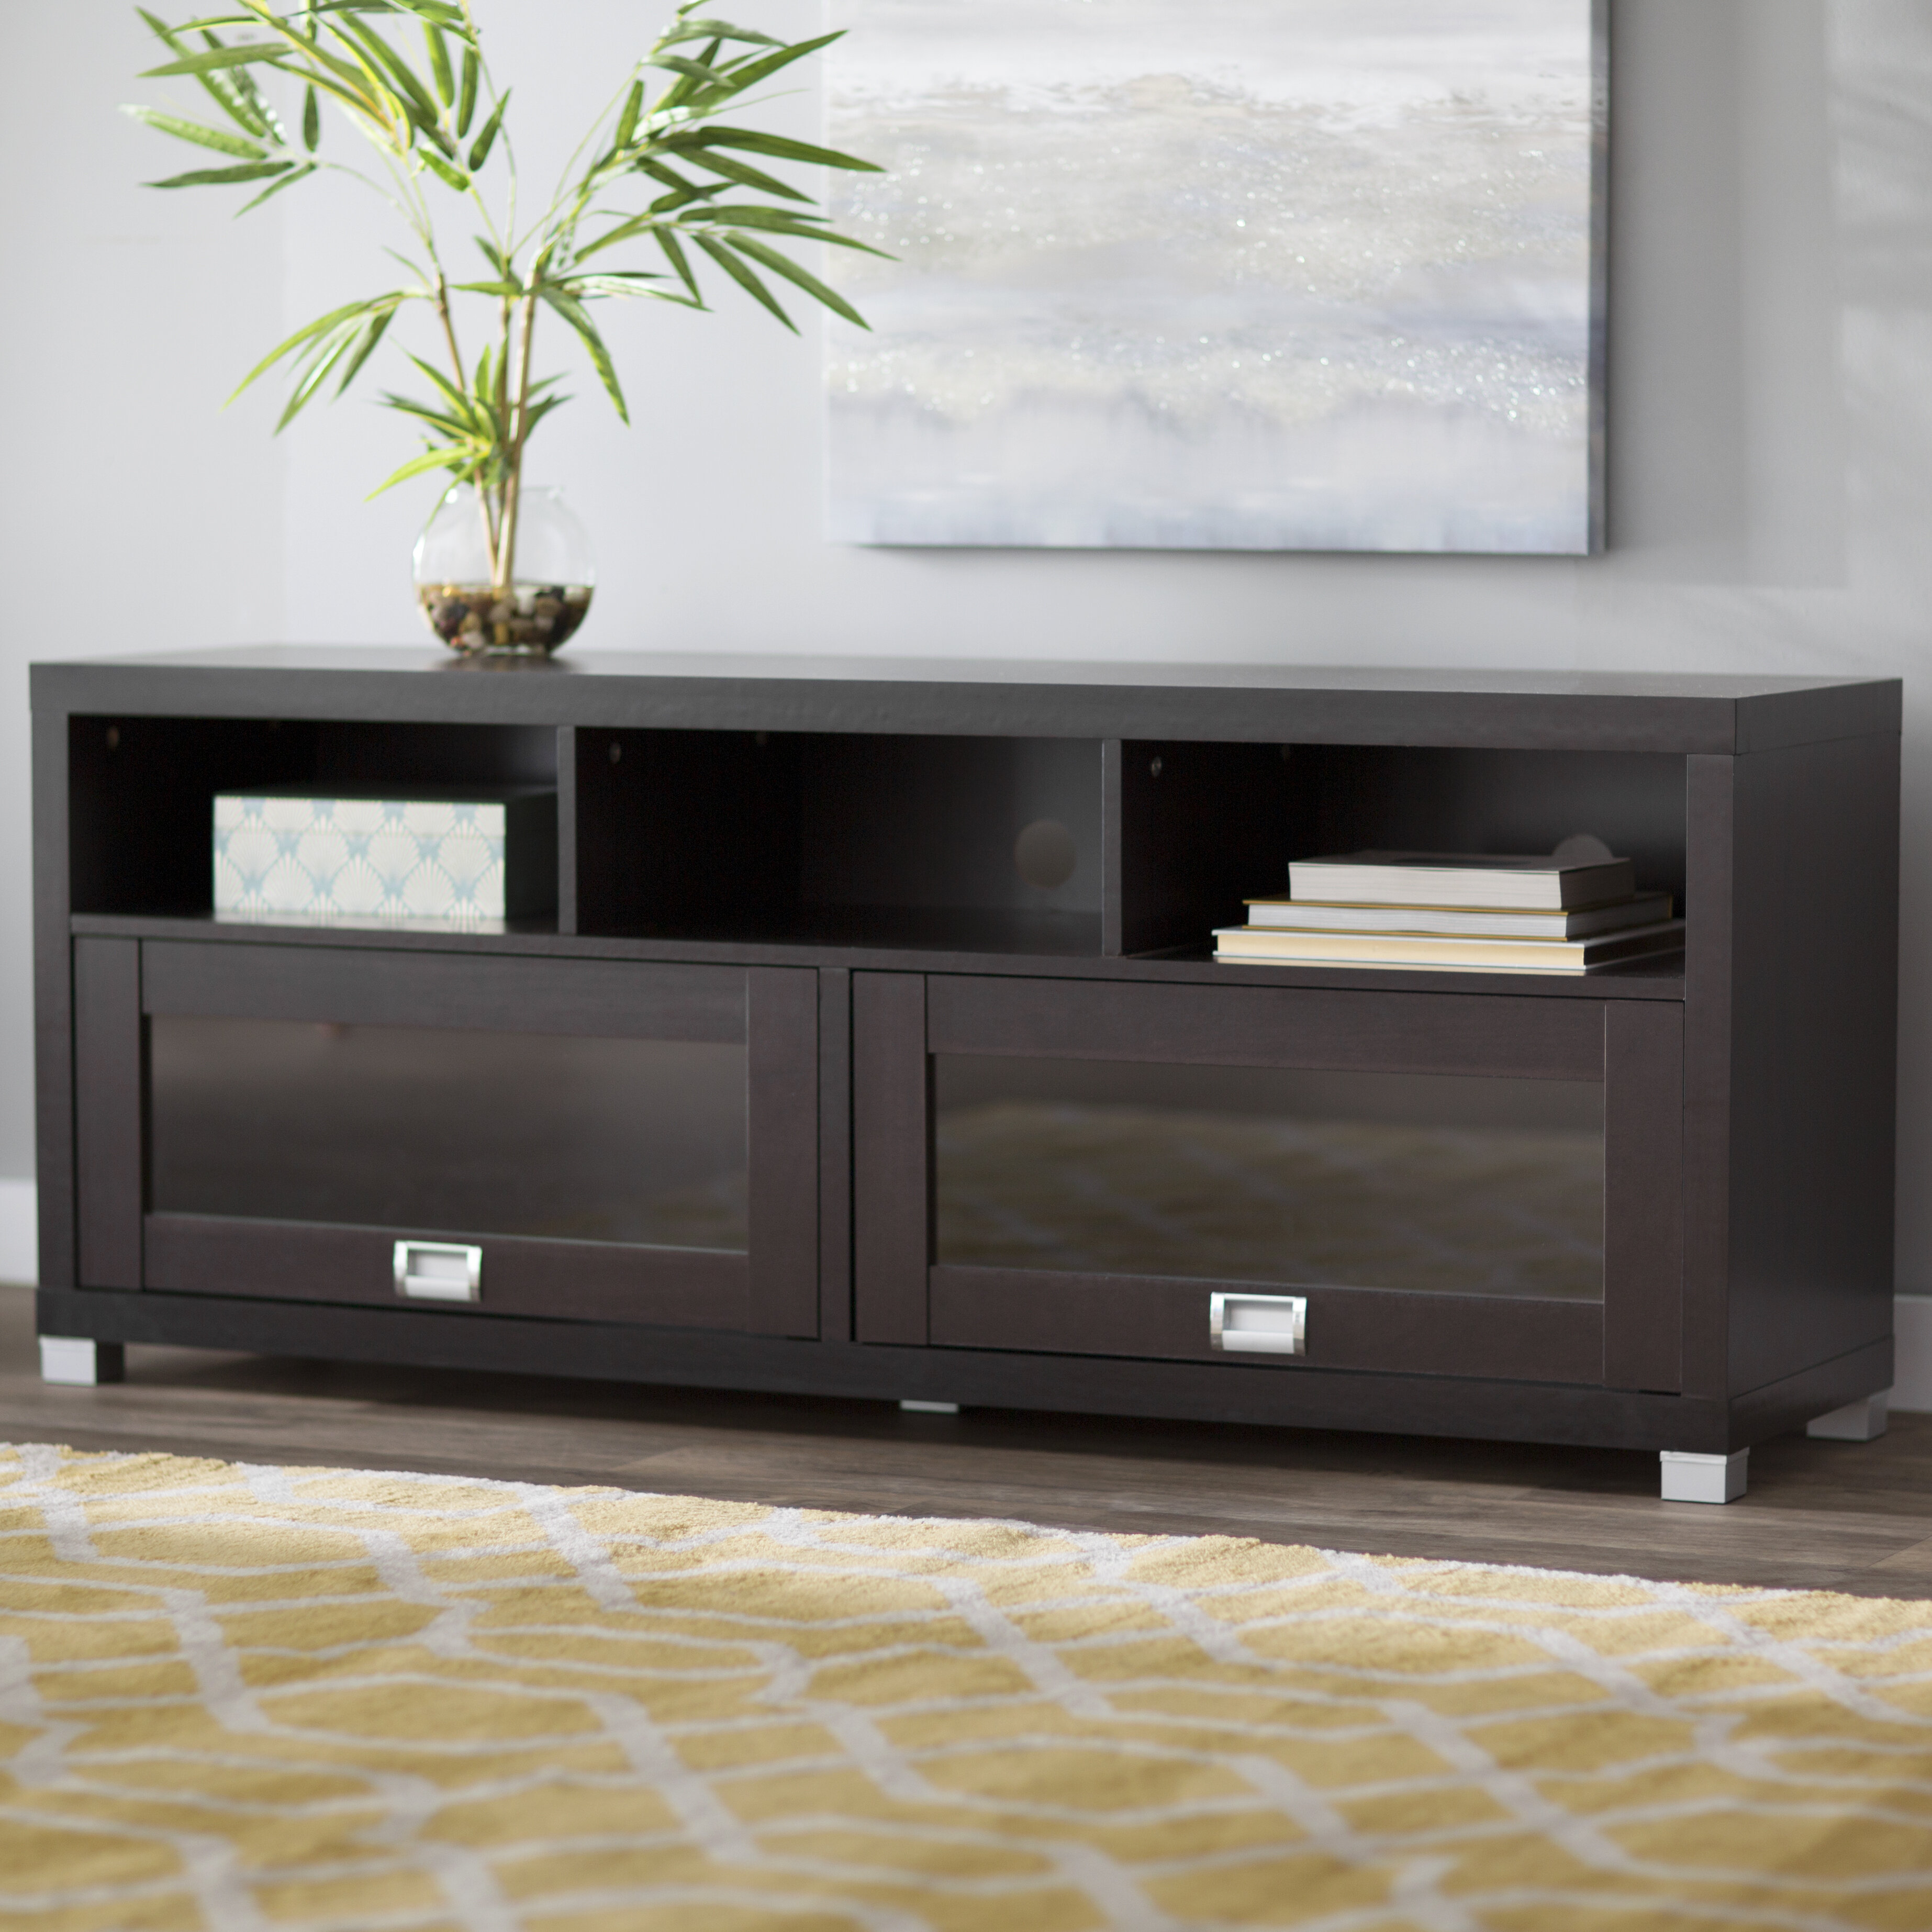 Latest T V Stand Designs : Off white modern decorative tv unit warranty year rs